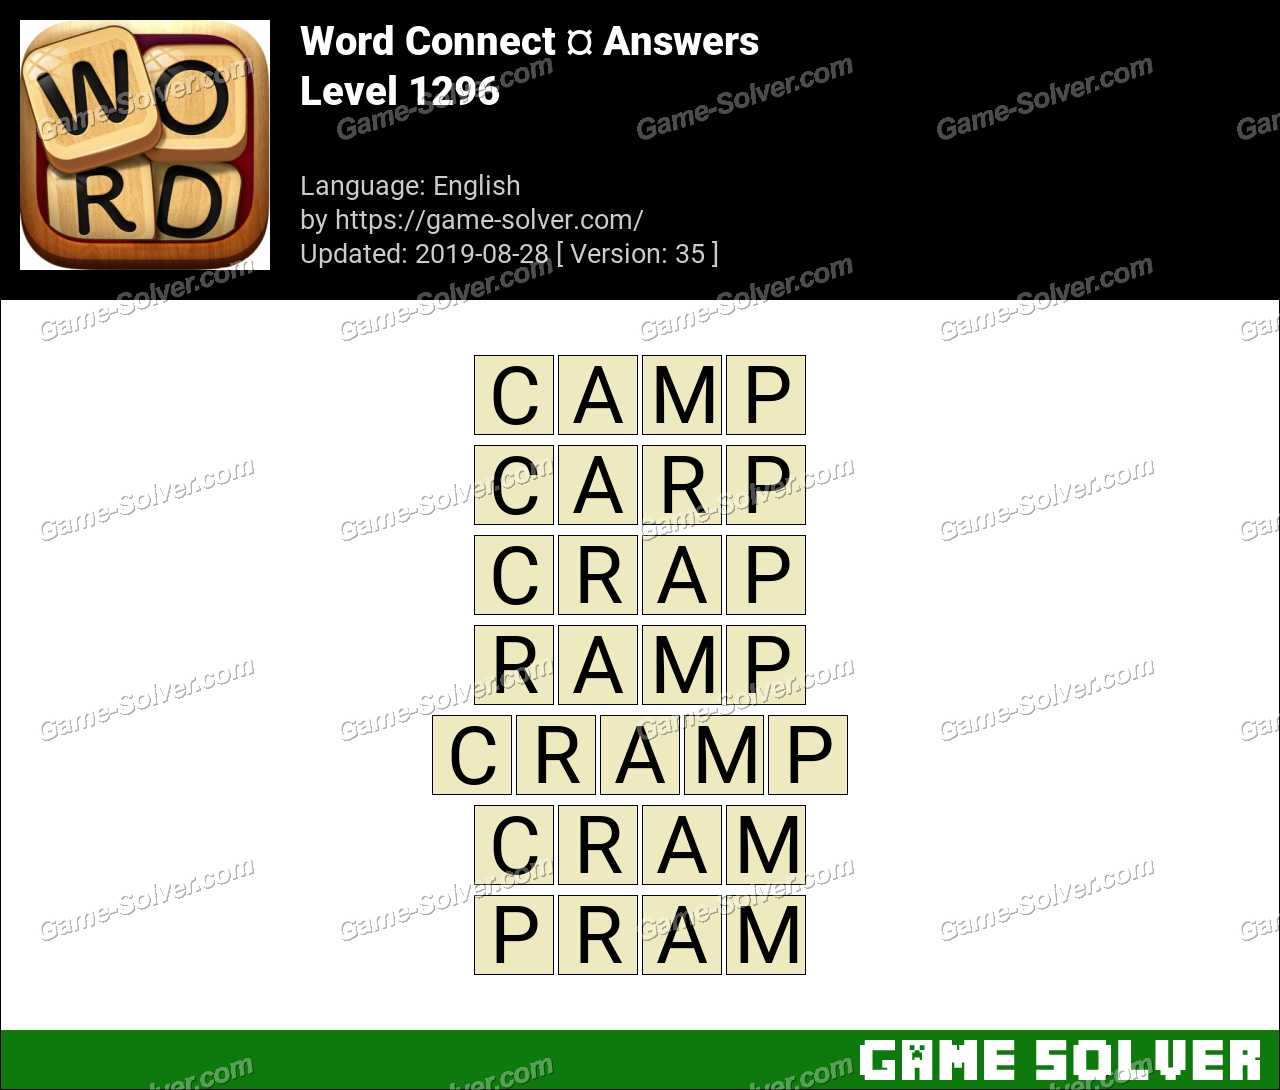 Word Connect Level 1296 Answers